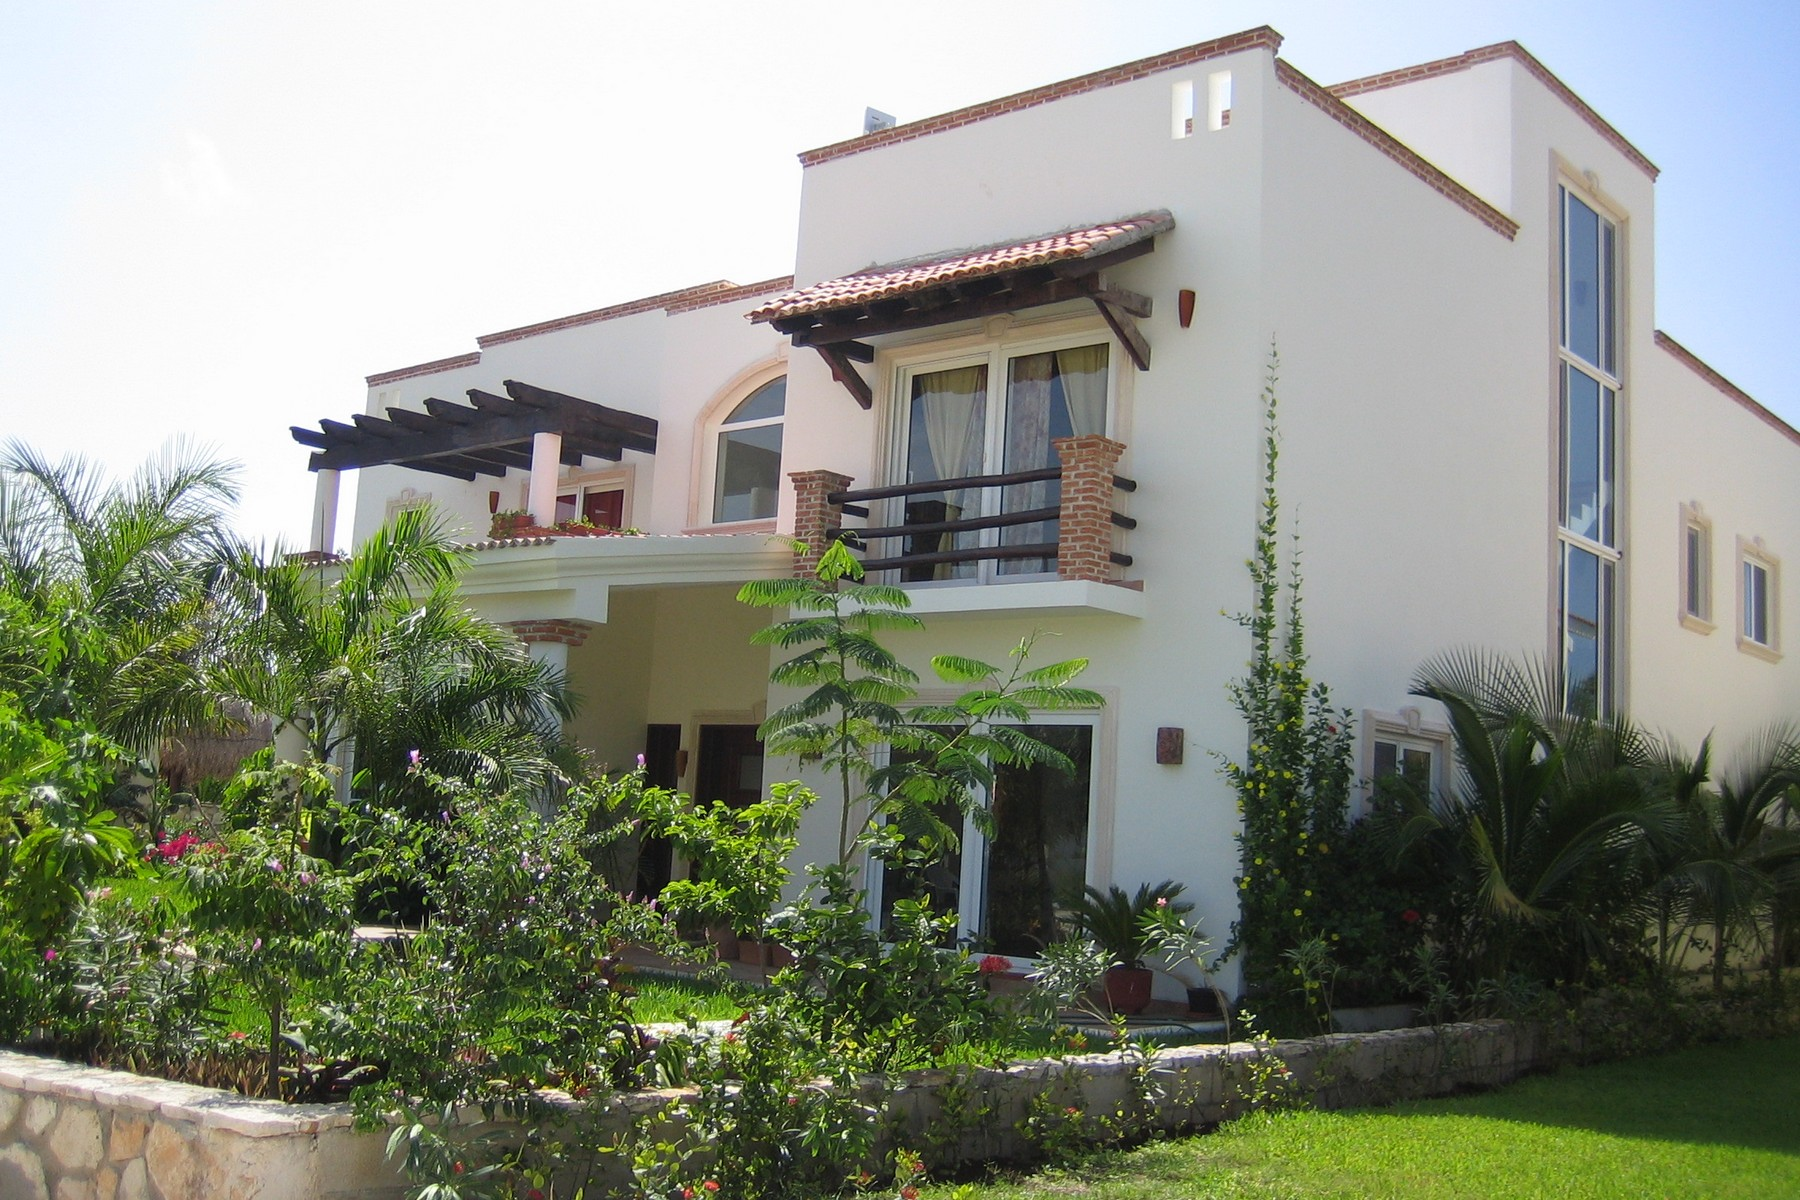 Single Family Home for Sale at CASA ANDALUCIA Playa Del Carmen, Quintana Roo 77710 Mexico